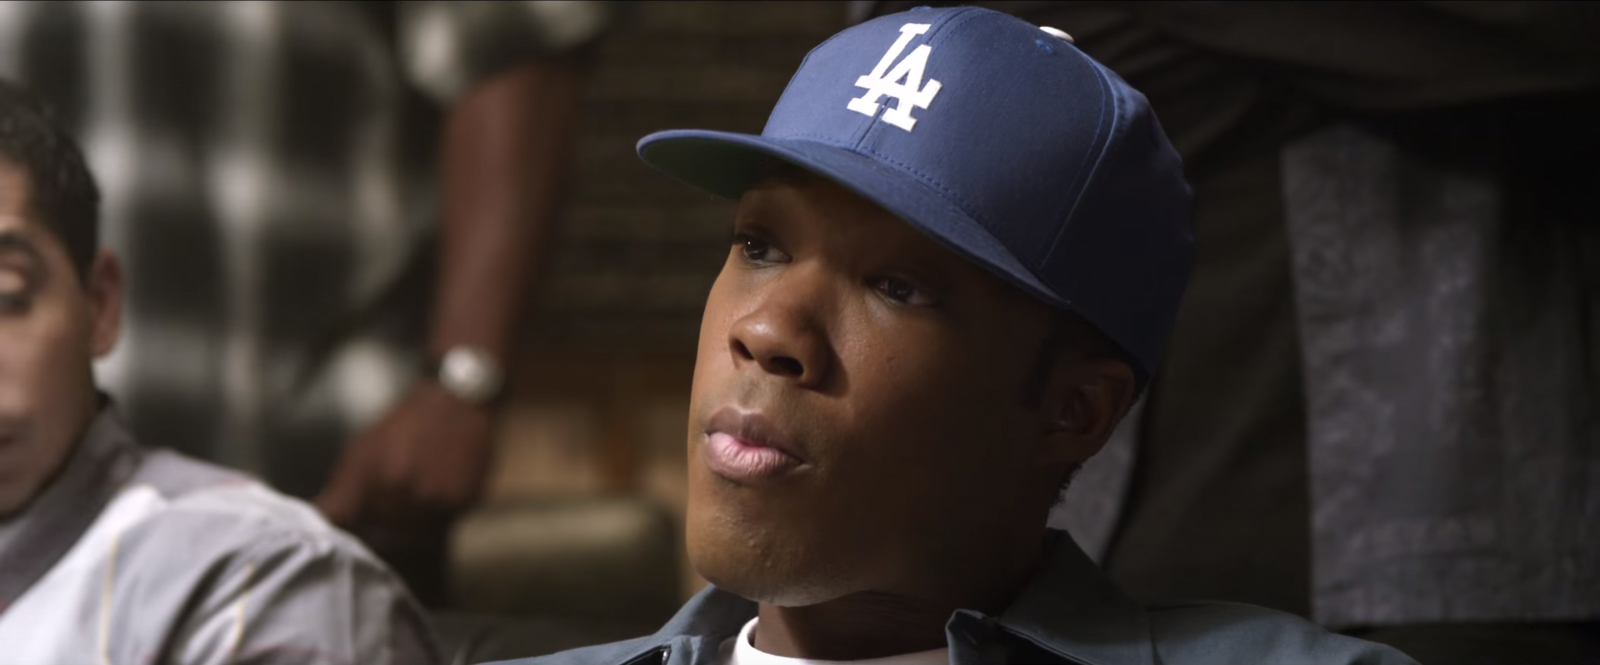 LA Dodgers hat Dr. Dre in Straight Outta Compton (2015)